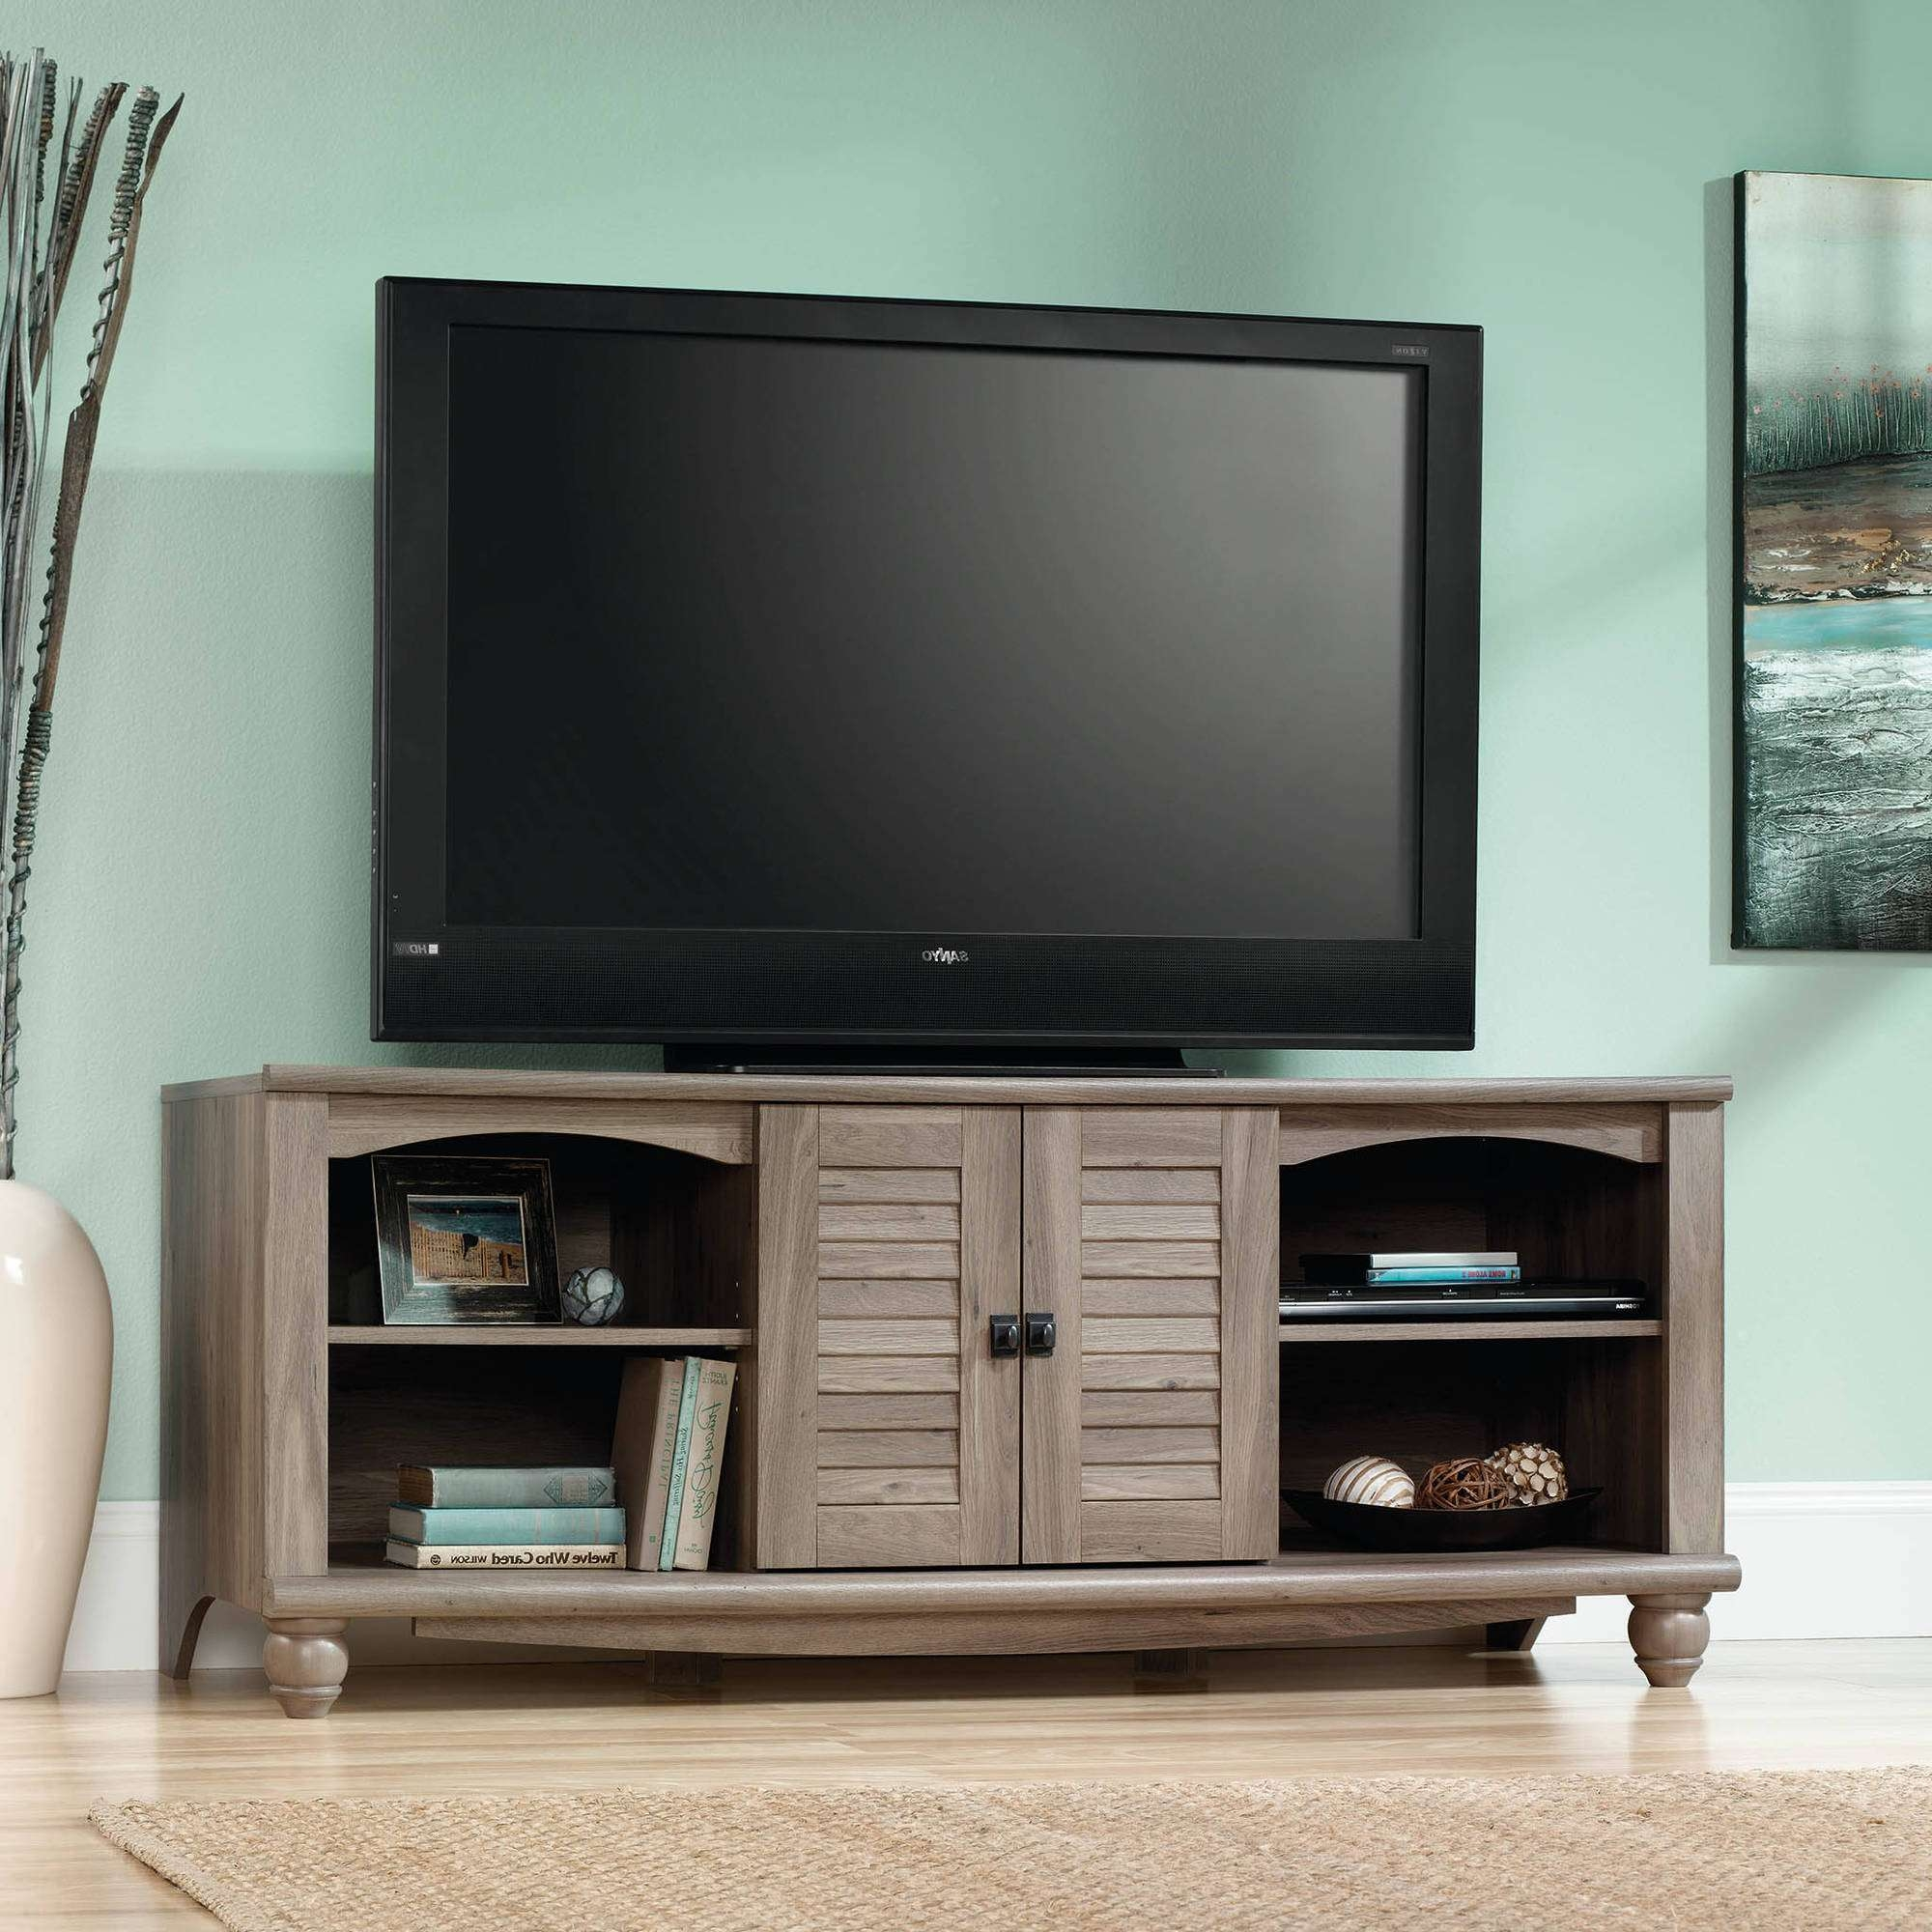 Tv Stands & Entertainment Centers – Walmart With Regard To Entertainment Center Tv Stands (View 12 of 15)